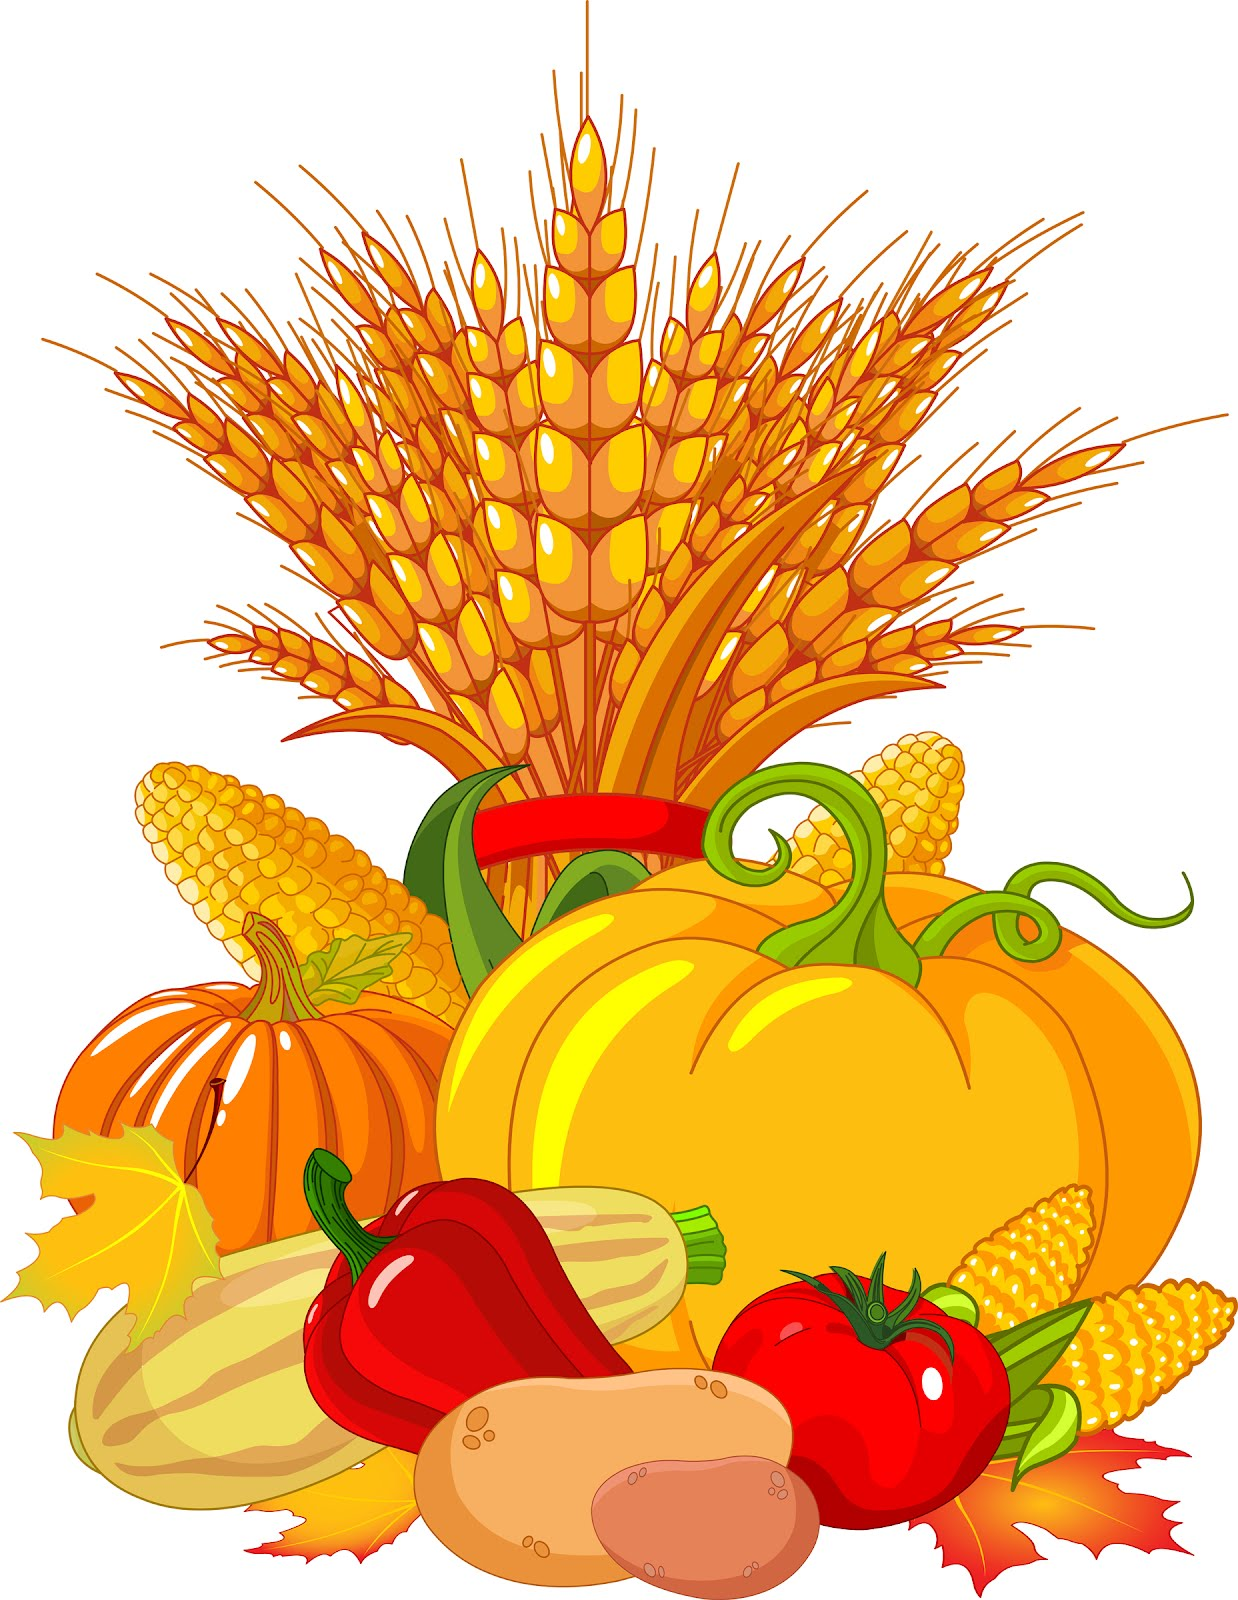 Fall festival harvest church clipart 3.